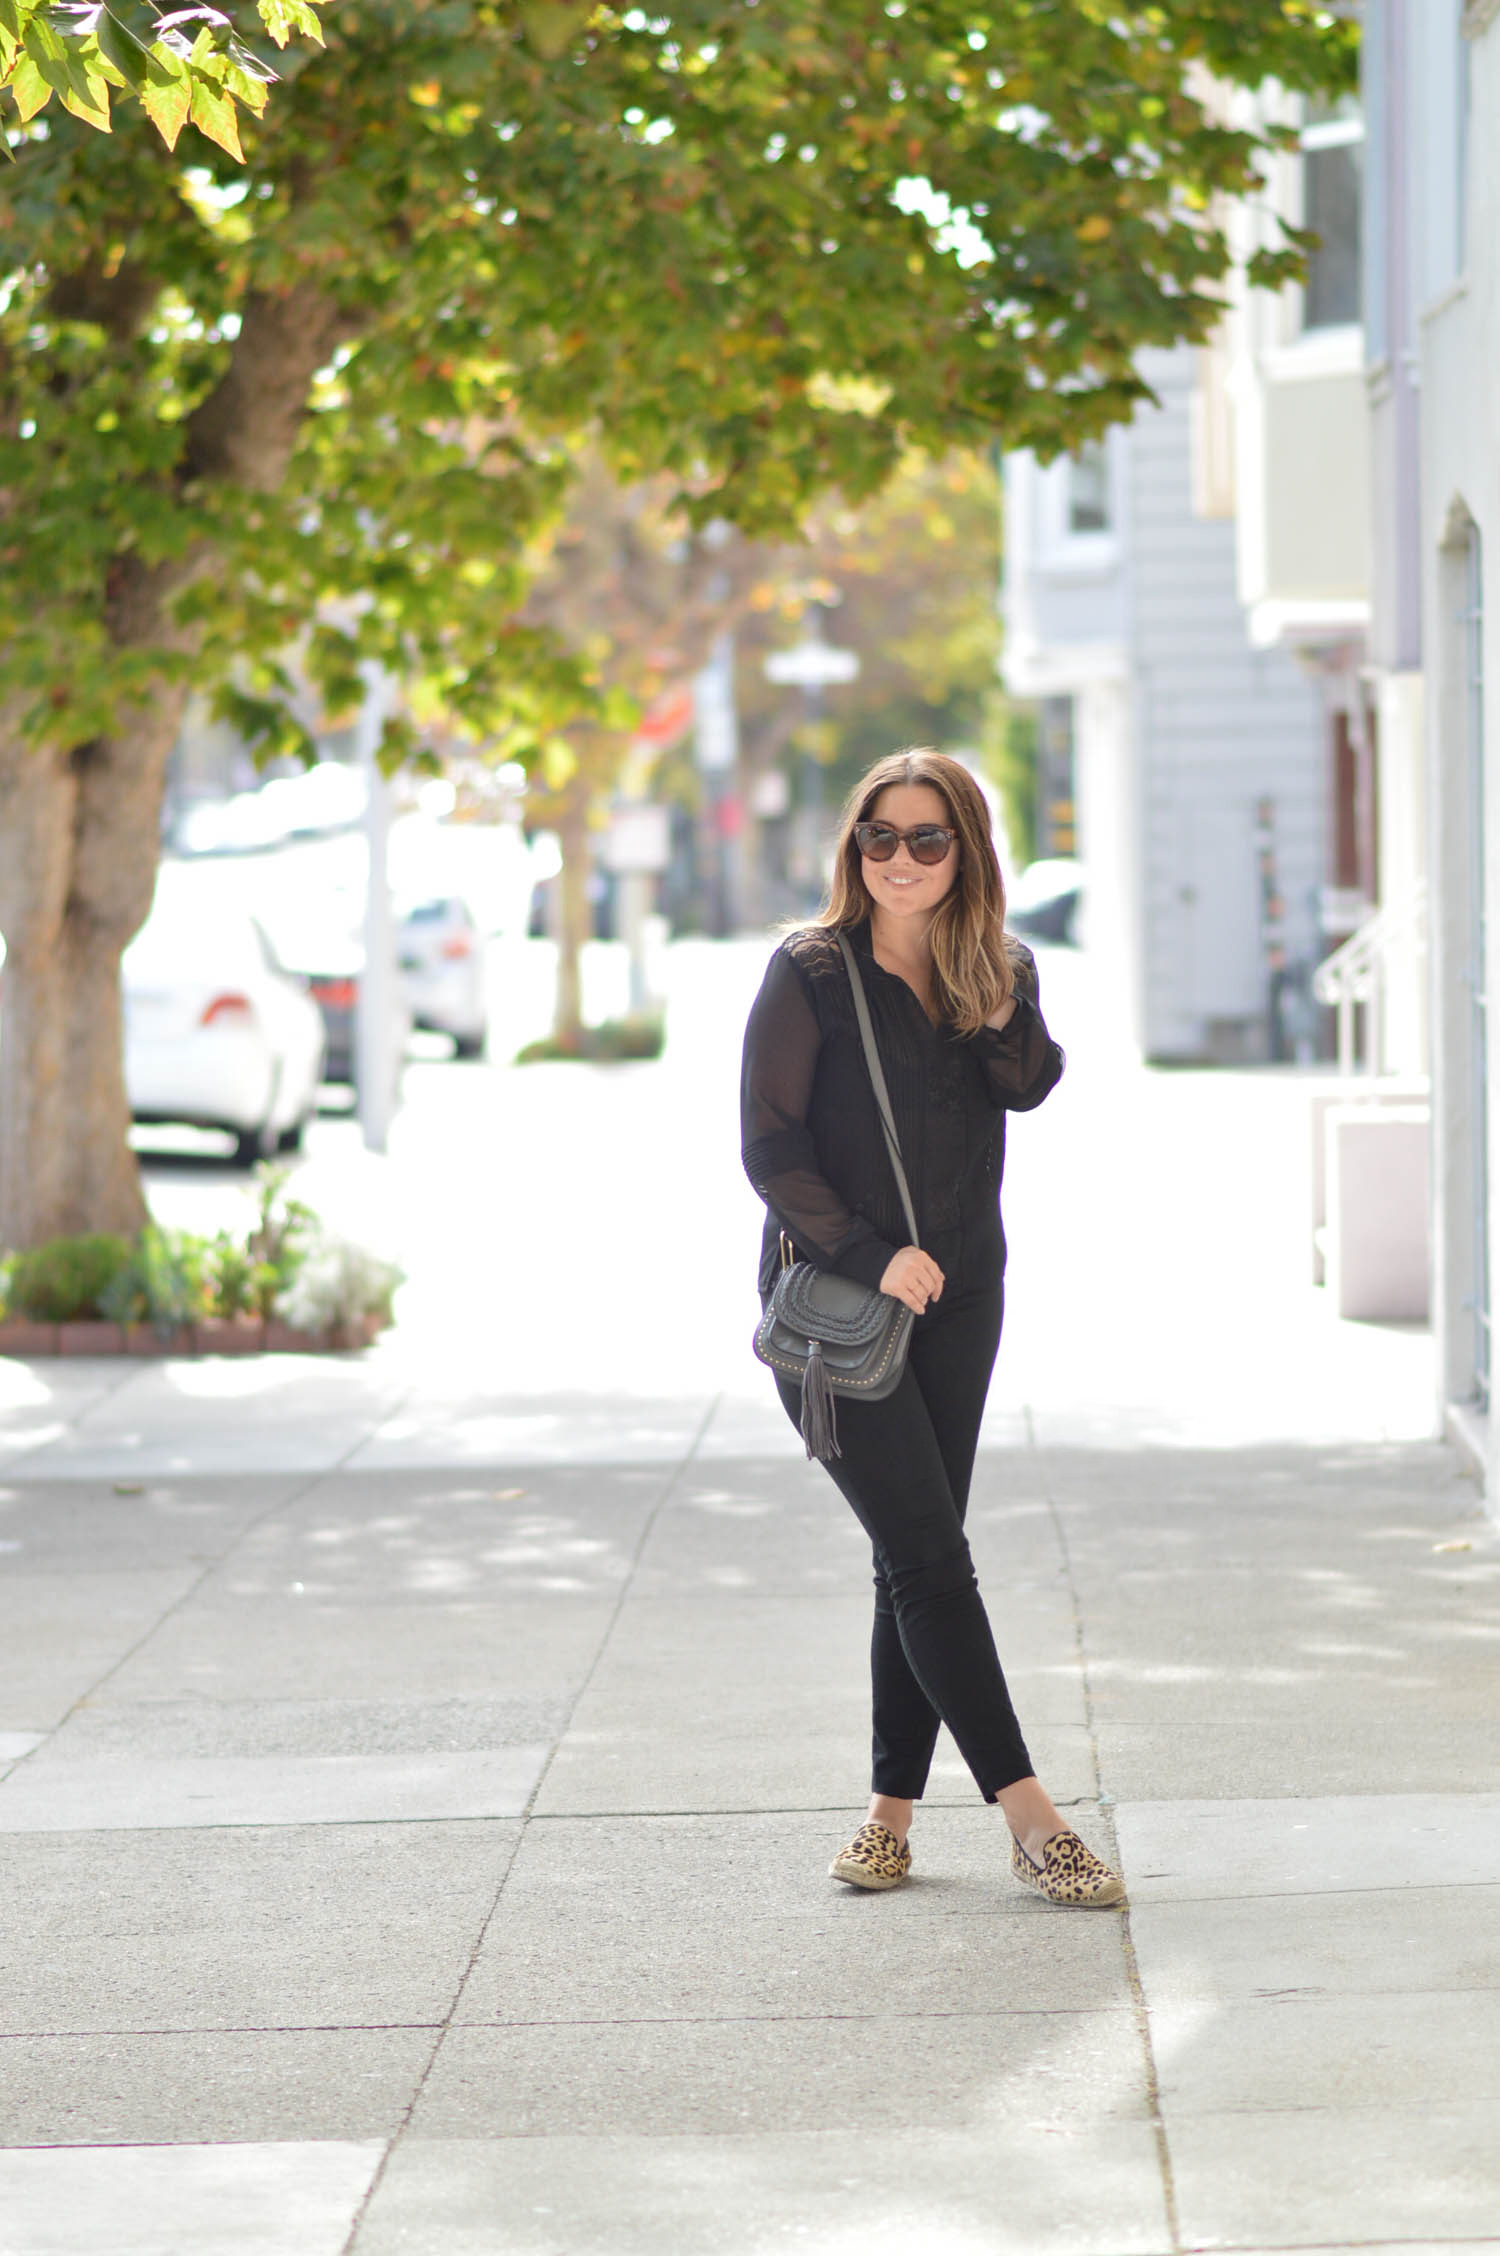 Black Lace Blouse, Late summer in San Francisco  via. www.birdieshoots.com